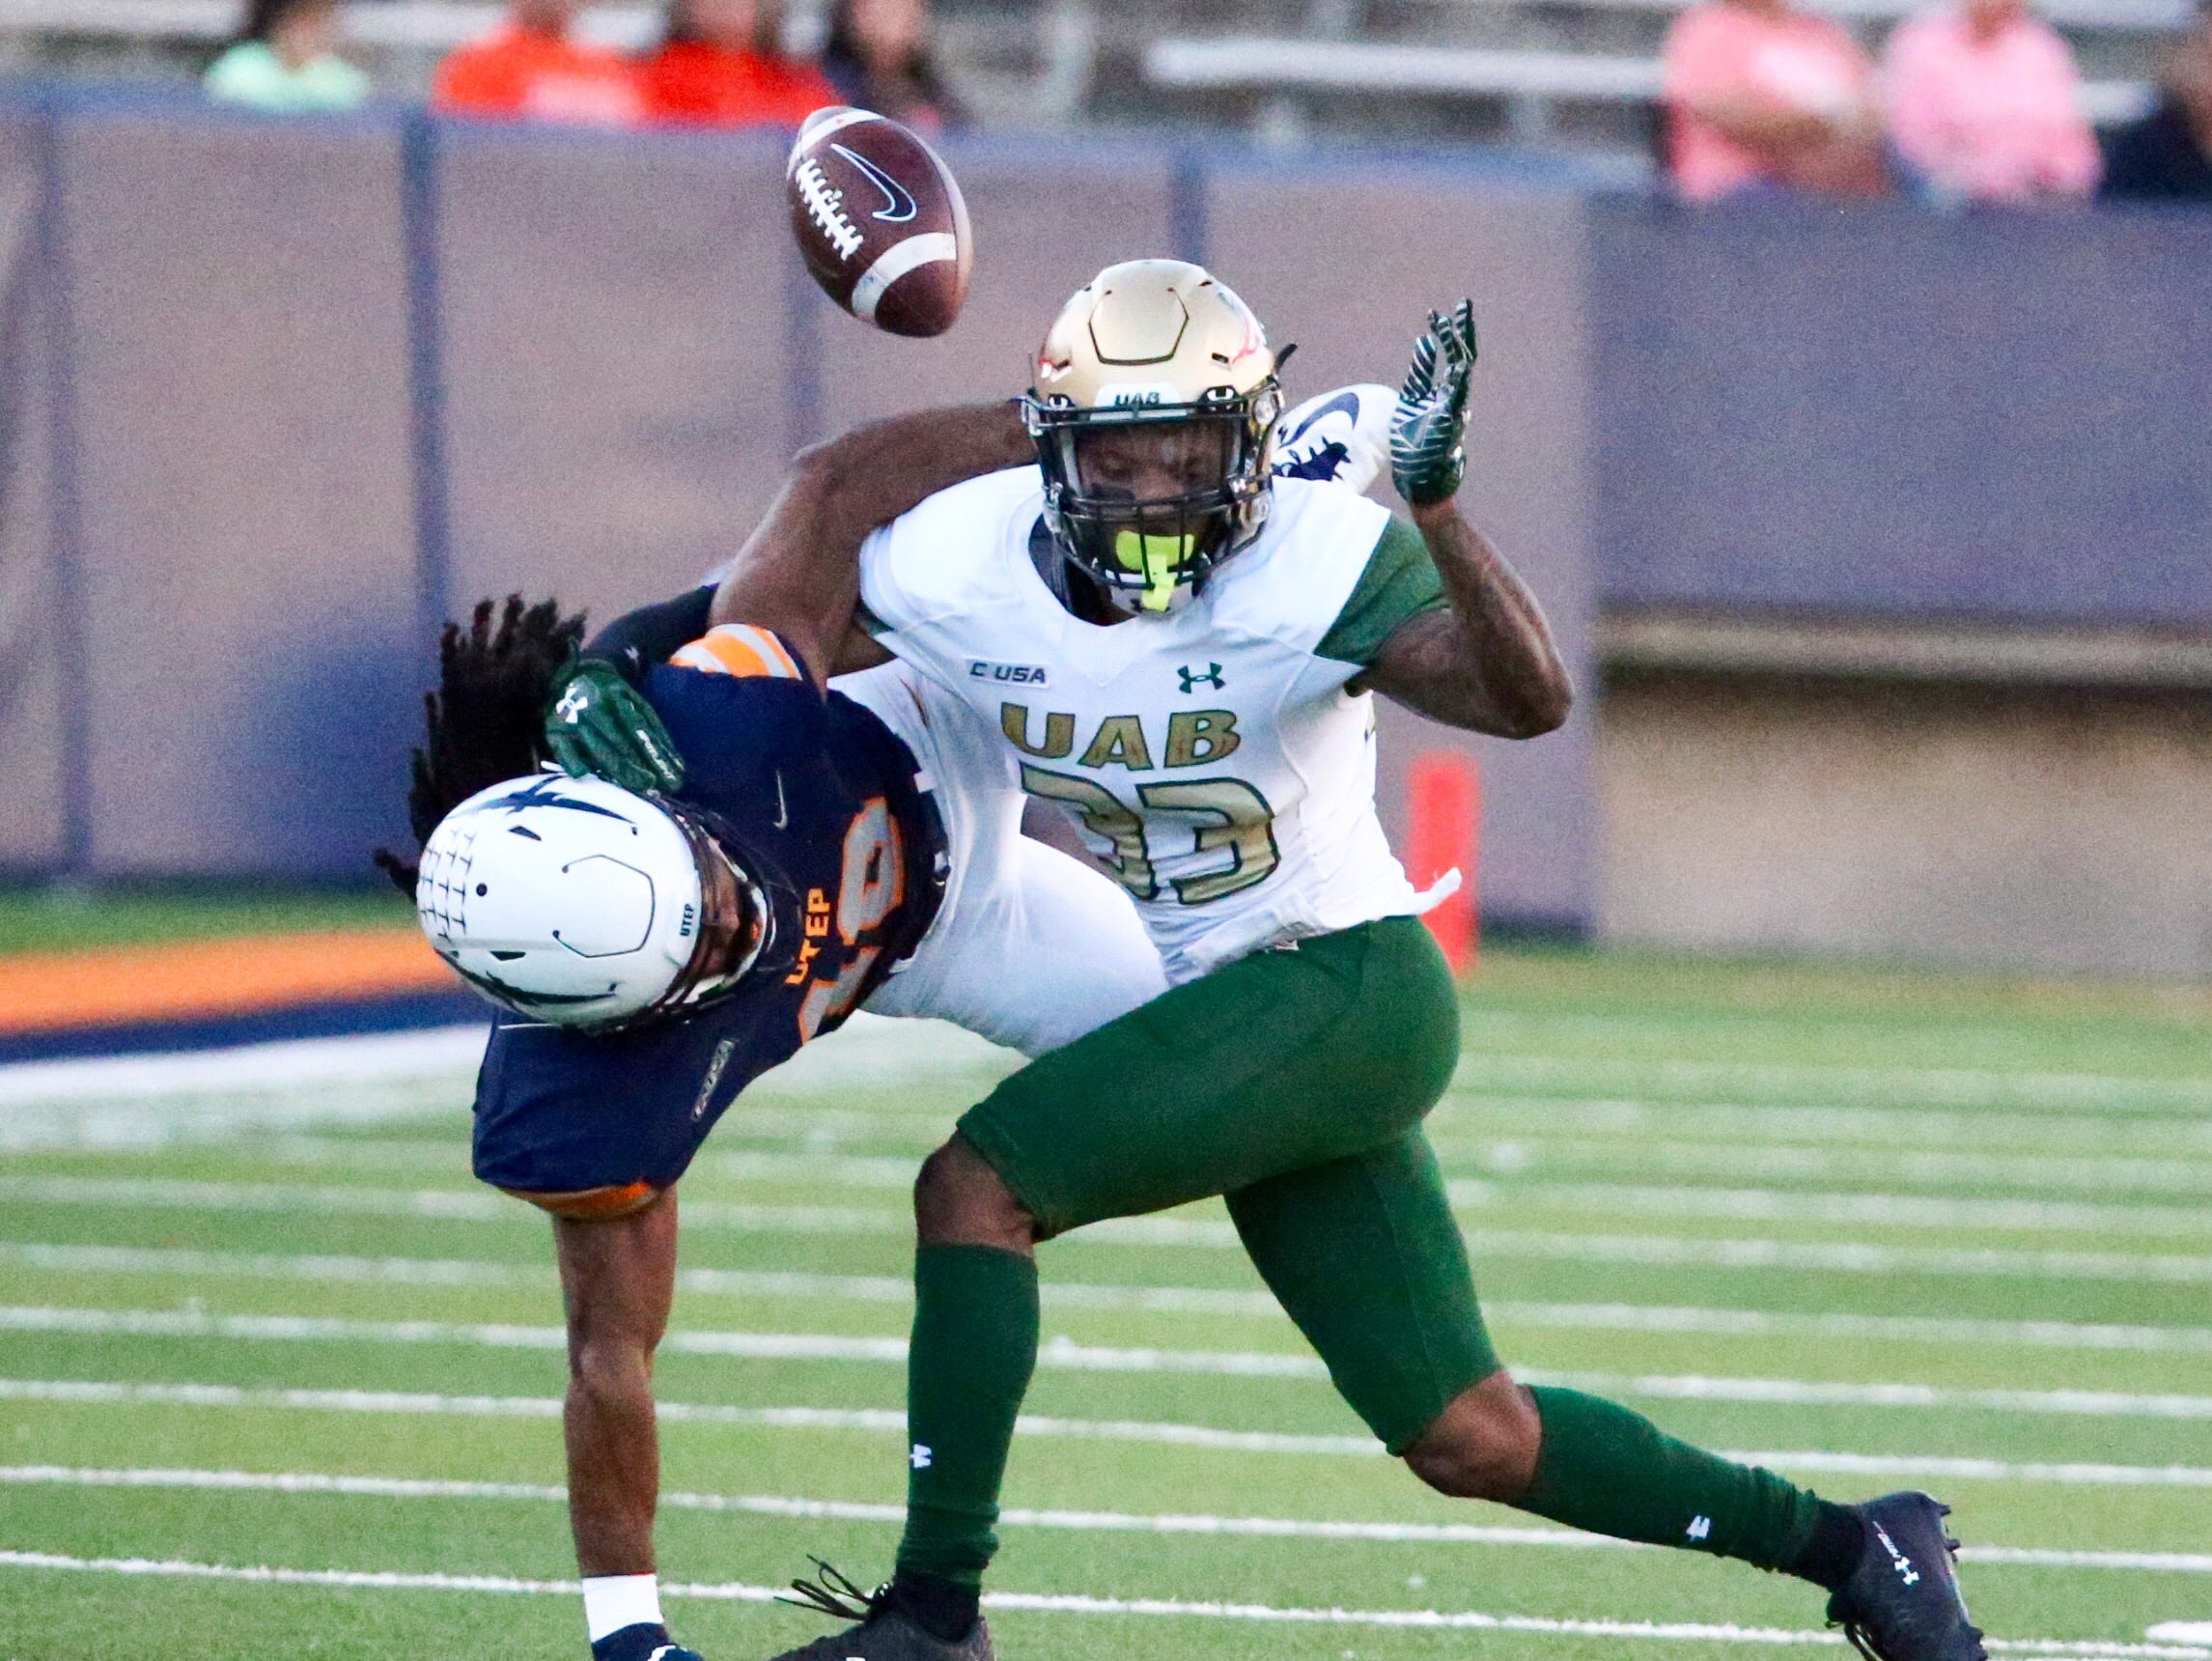 UTEP wide receiver Warren Redix, left, gets wrapped up with UAB's Brontae Harris, 33,  while going for a pass Saturday, Oct. 27 in the Sun Bowl Stadium.